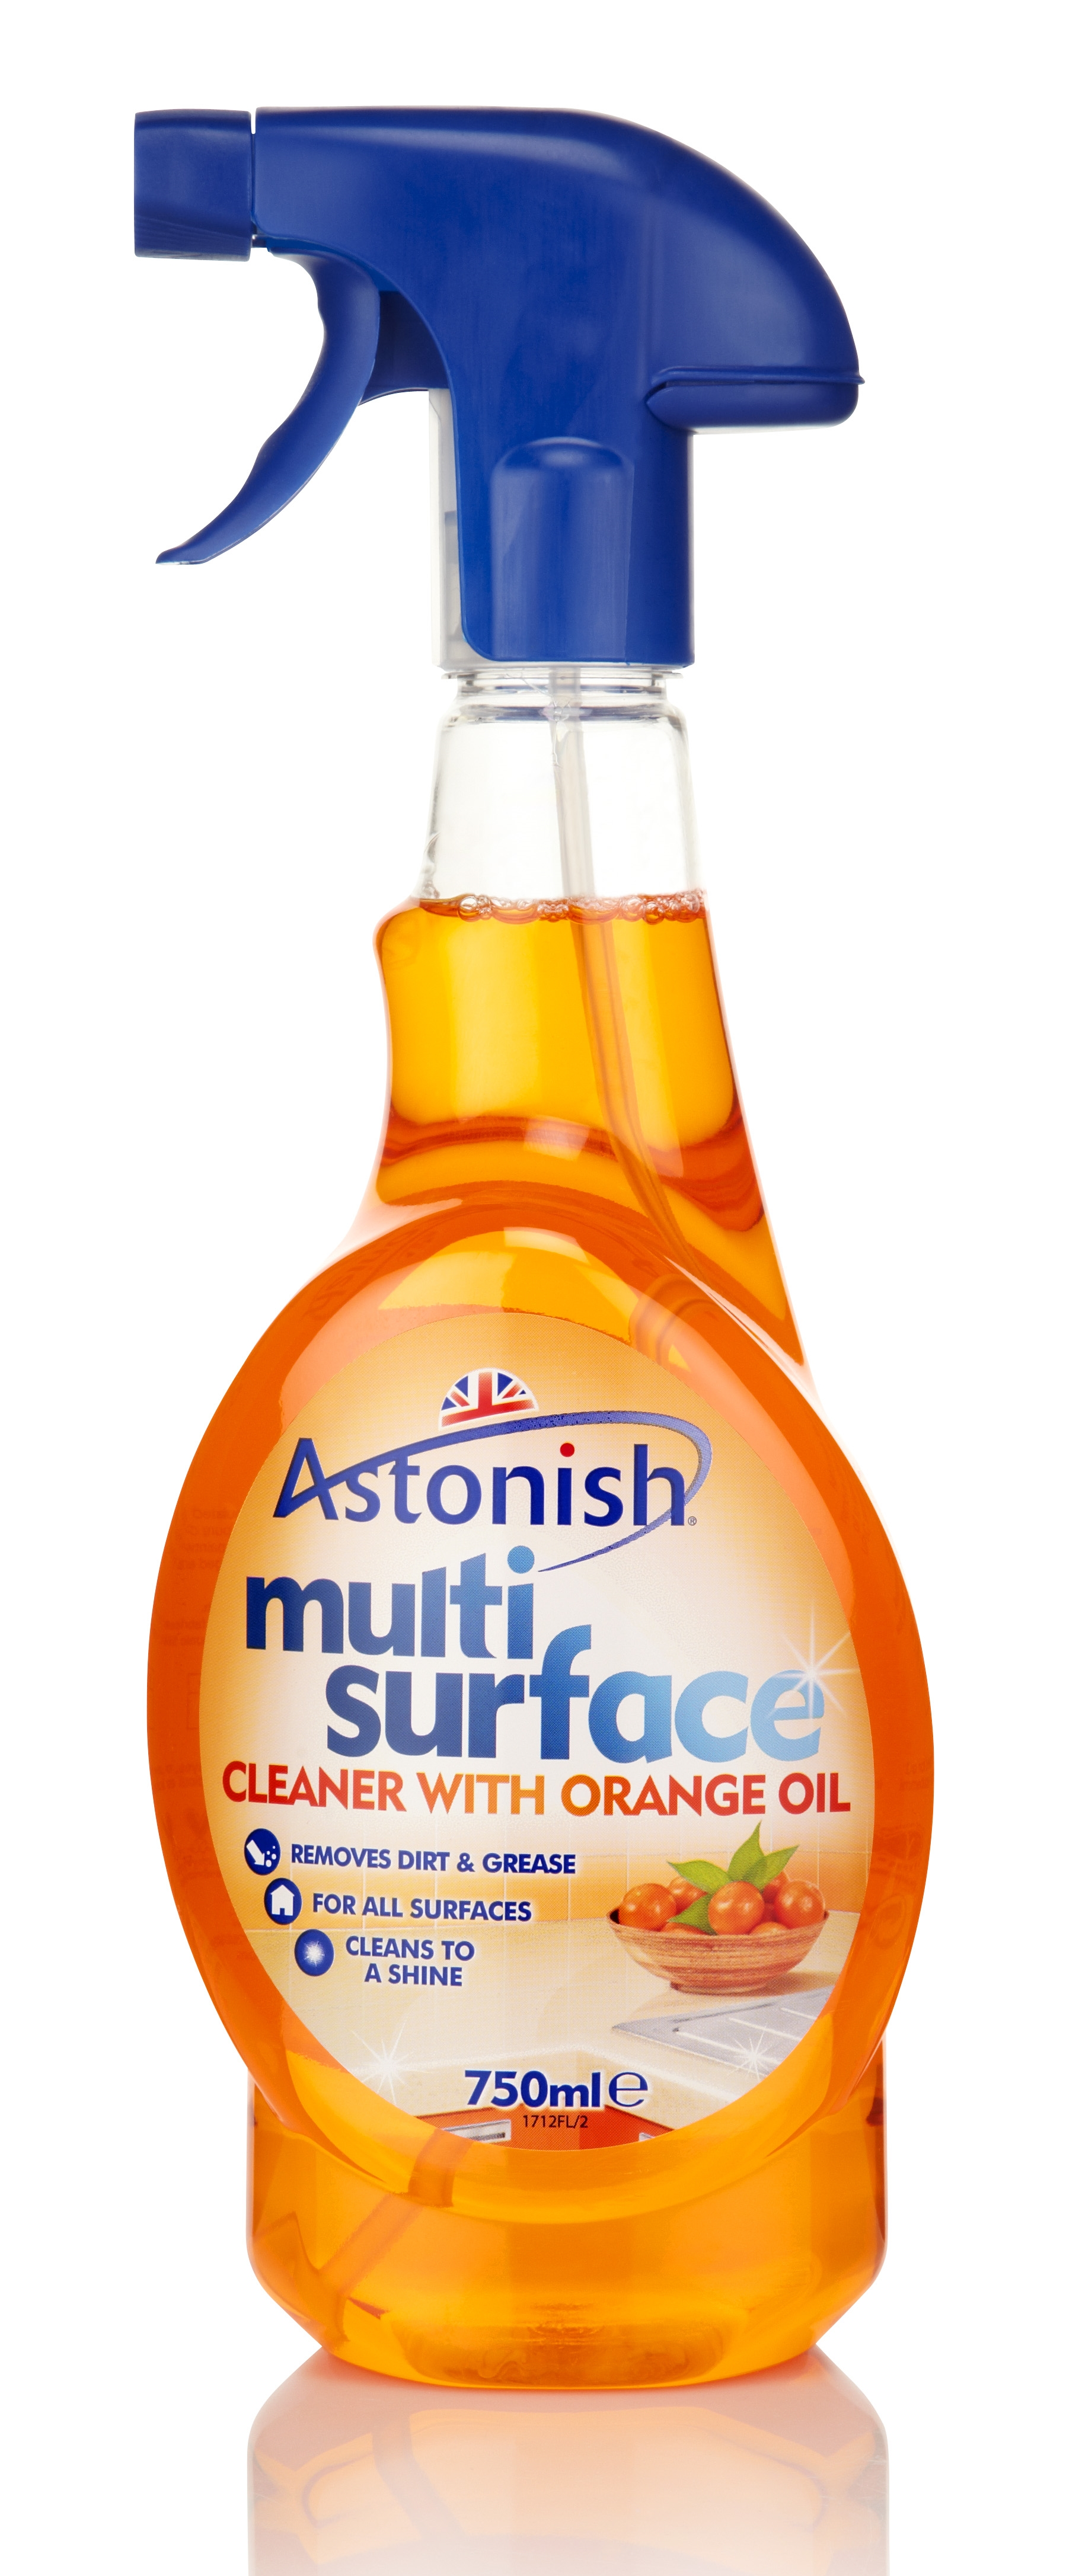 Astonish Multi Surface Cleaner with Orange Oil 750ml.jpg